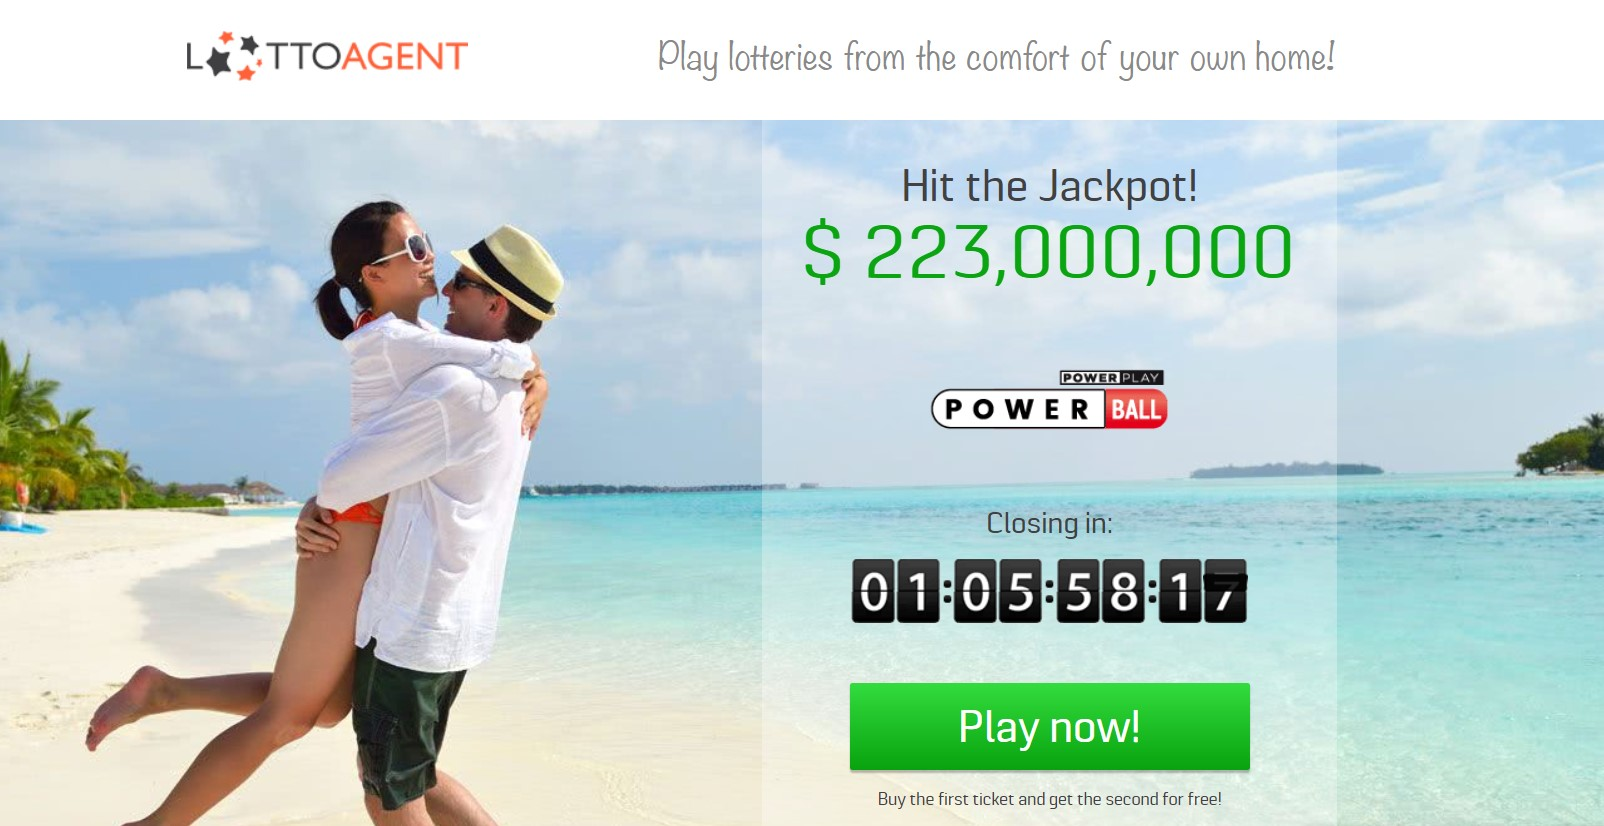 Lotto agent review | 24 lotteries and tons of discounts